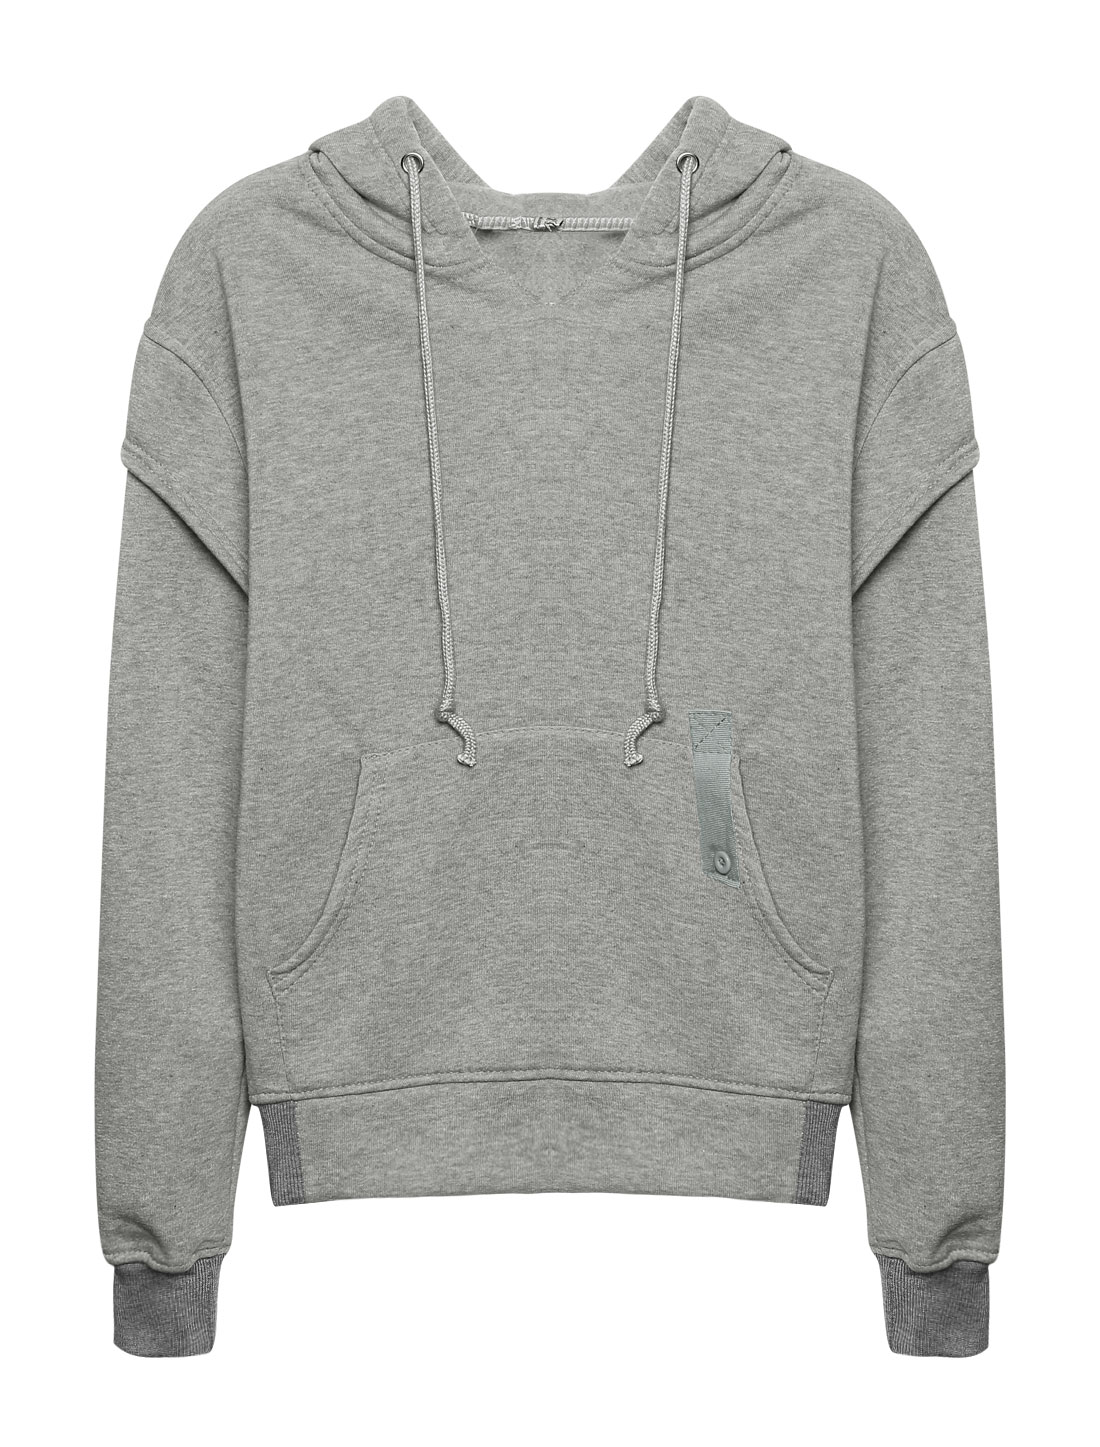 Women Kangaroo Pocket Embroidered Letters Drawstring Hoodie Gray XS